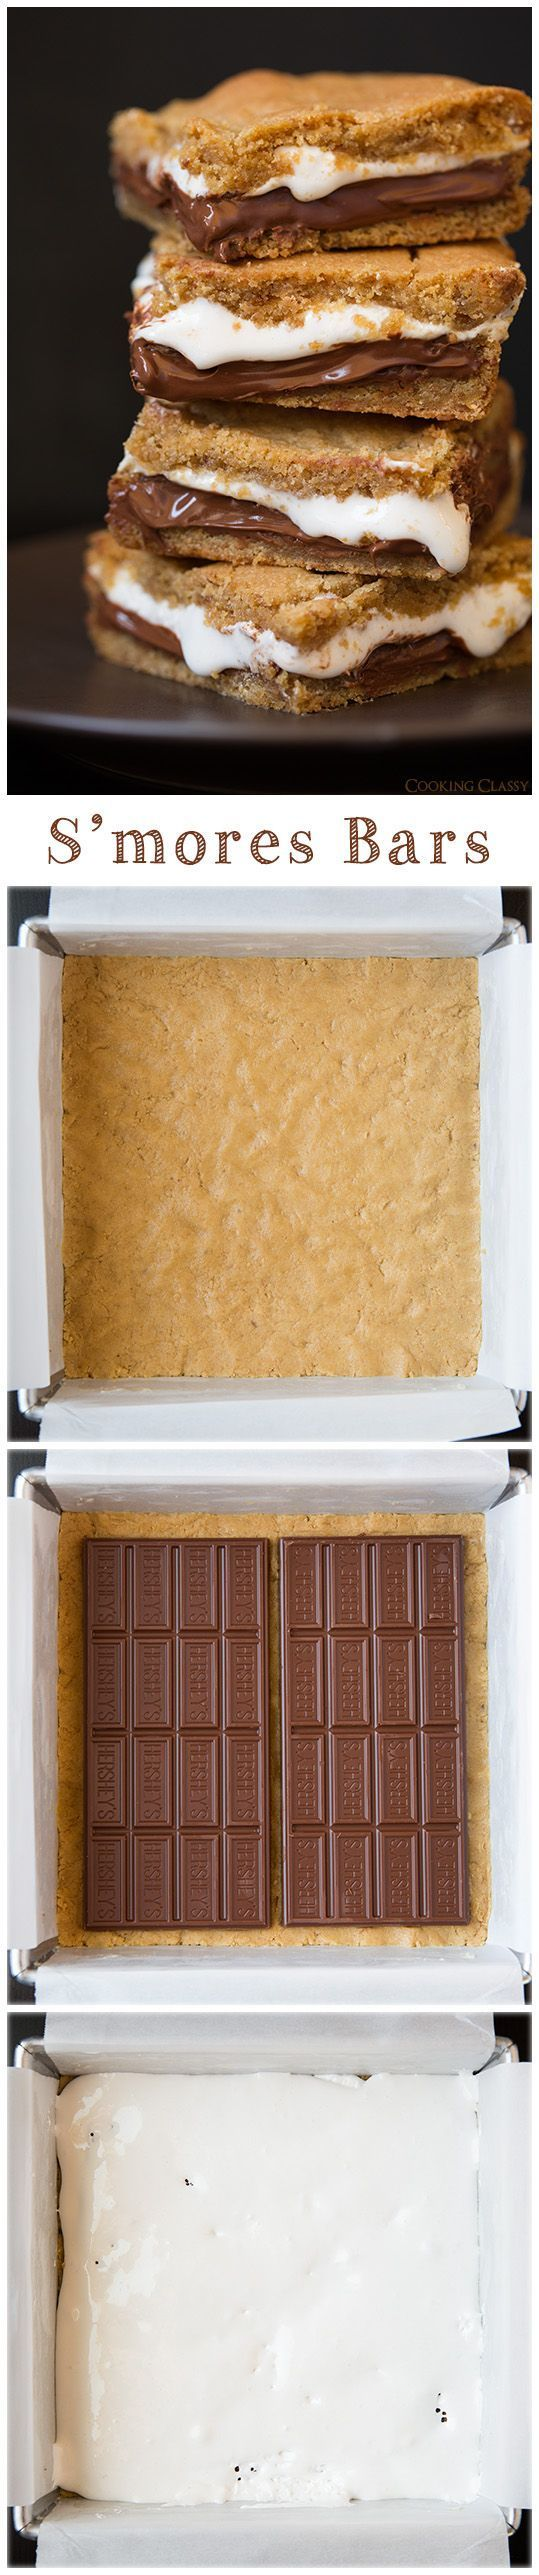 S'mores Bars - these are seriously amazing! Taste just like s'mores but in soft and chewy cookie bar form.